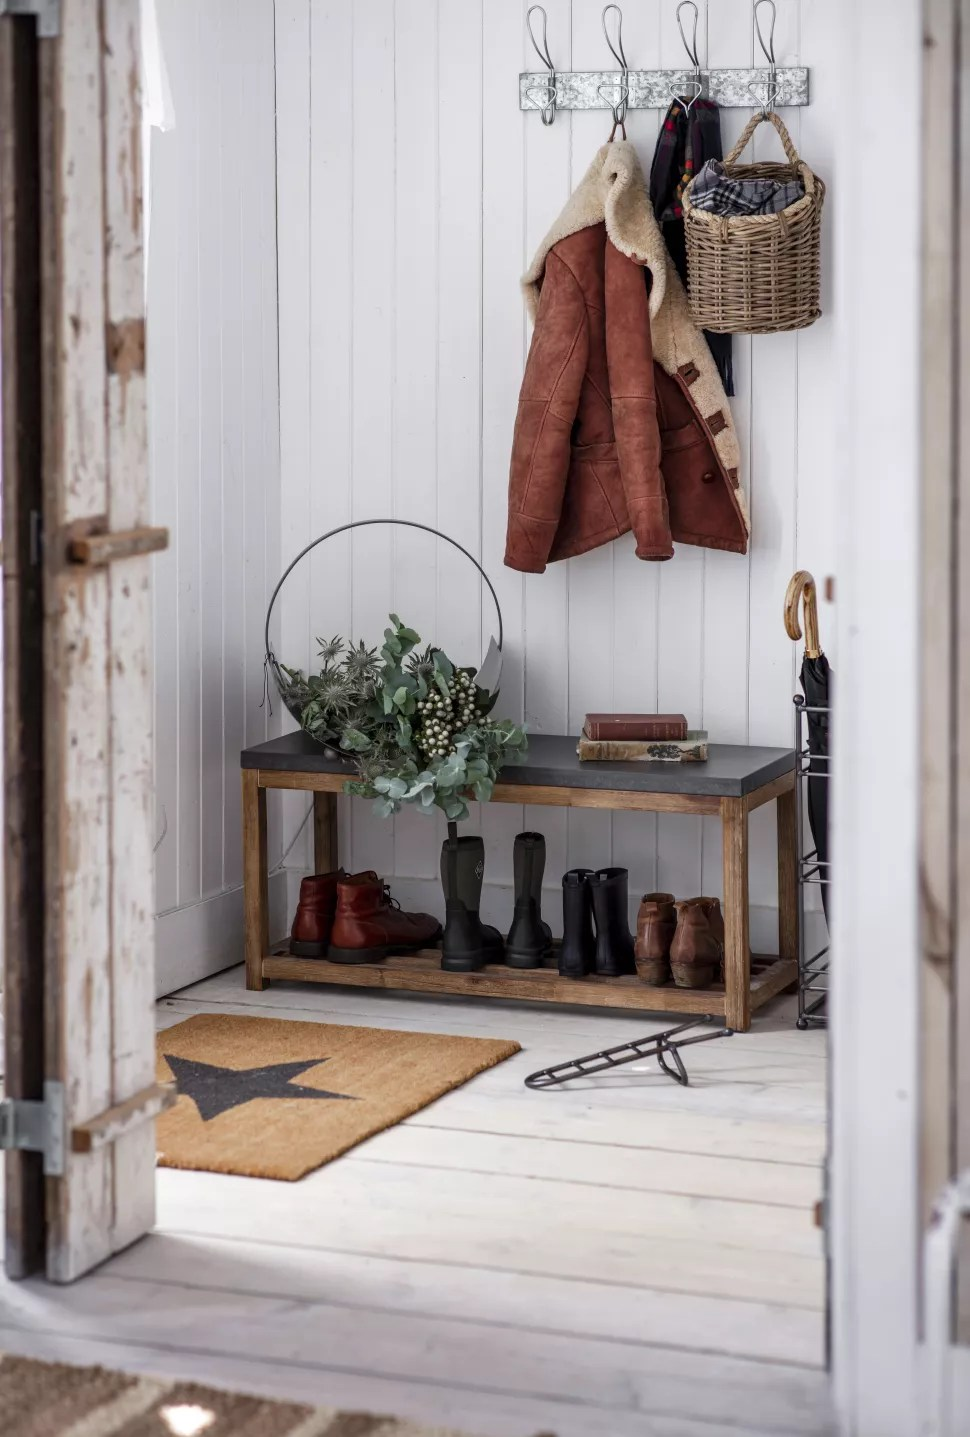 small hallway ideas with a storage bench for shoes